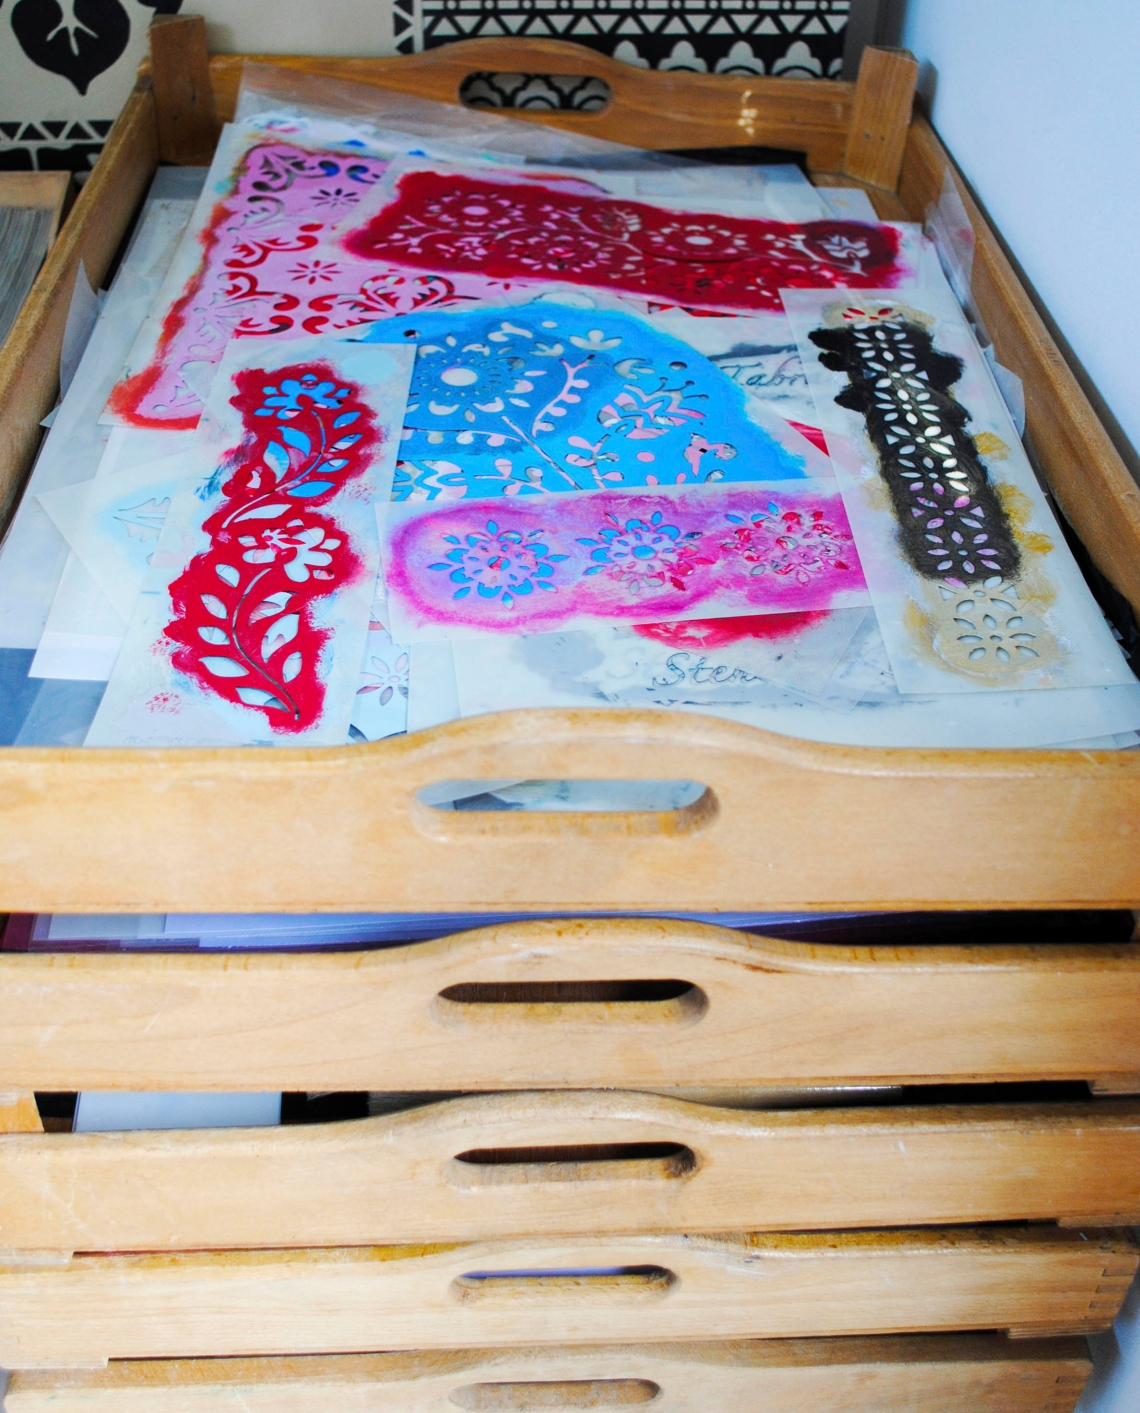 stencils-in-bakers-trays